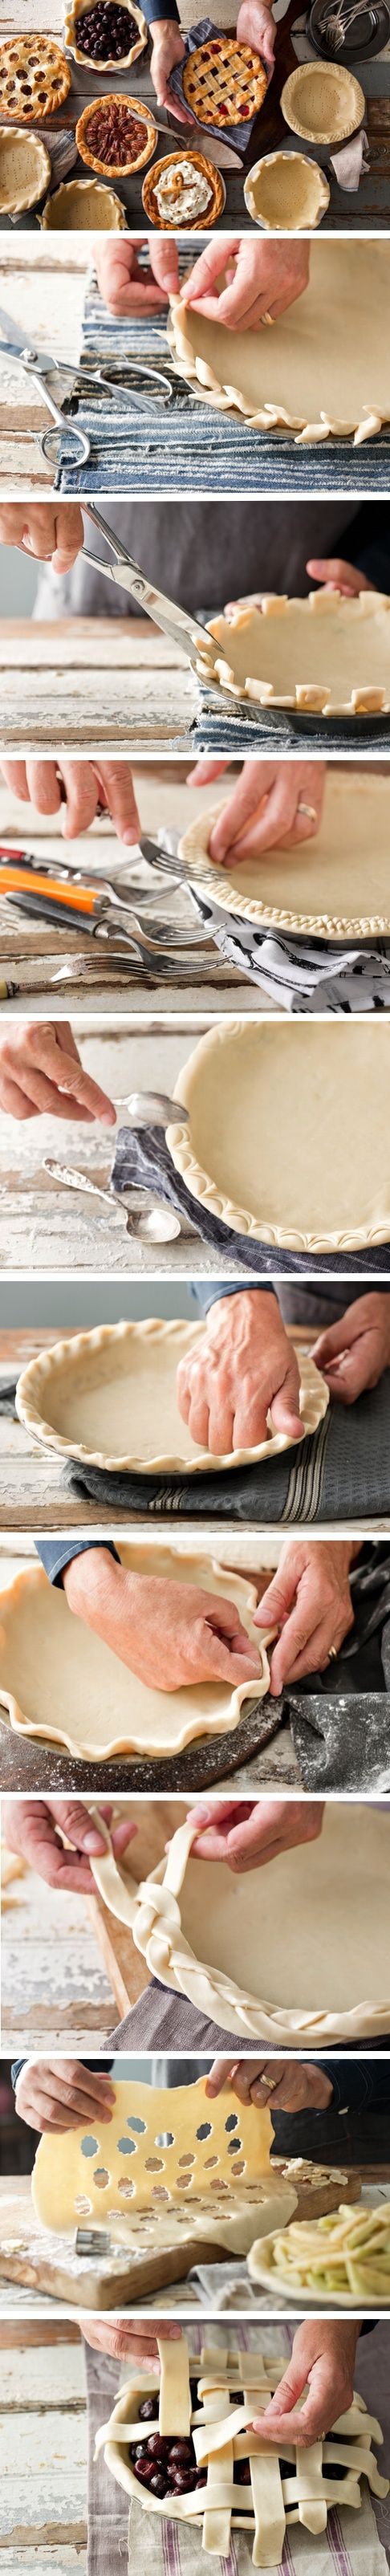 Pie Crust How-To